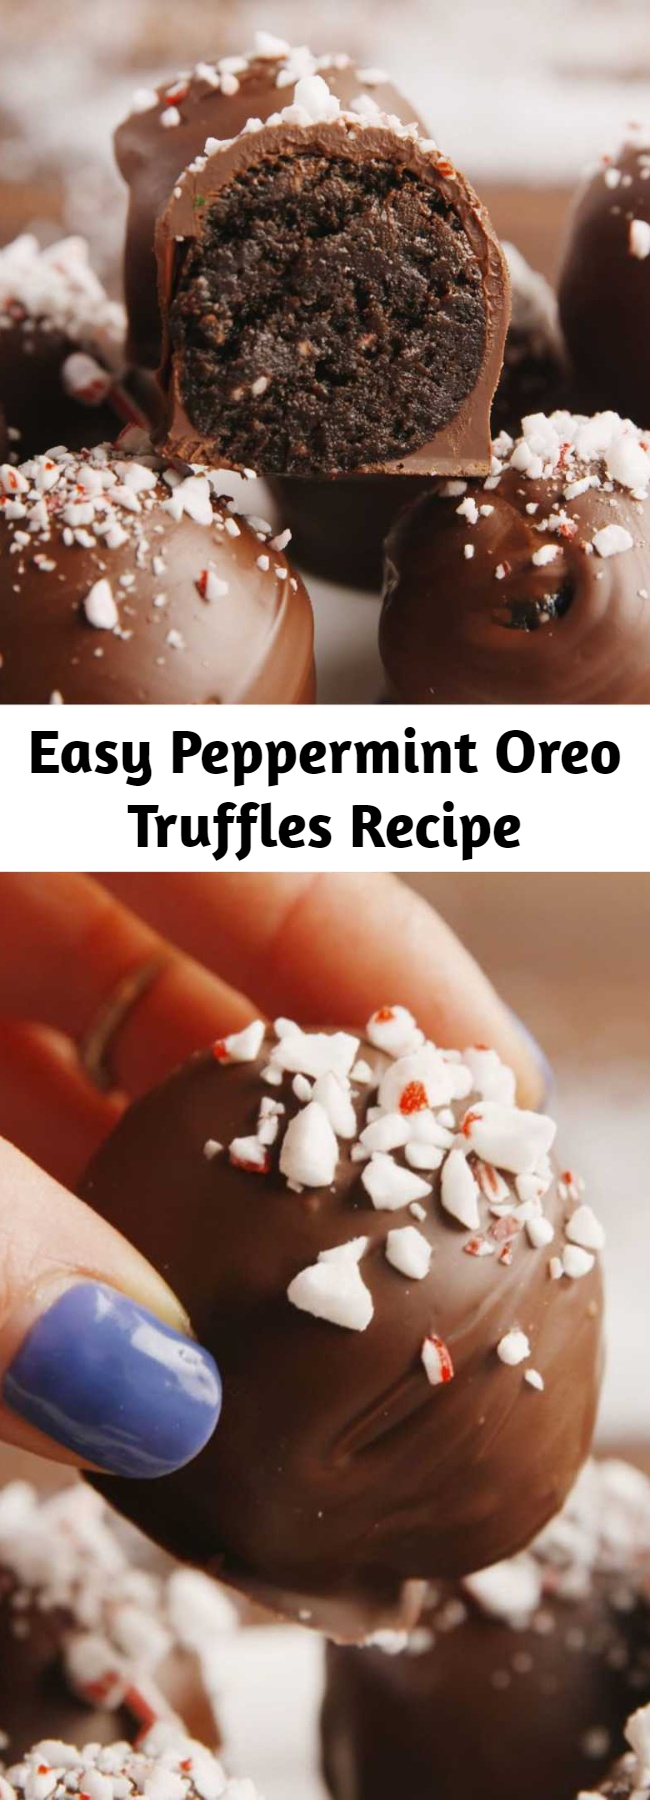 Easy Peppermint Oreo Truffles Recipe - How could something so simple be so good? #food #pastryporn #easyrecipe #recipe #holiday #christmas #ideas #wishlist #inspiration #home